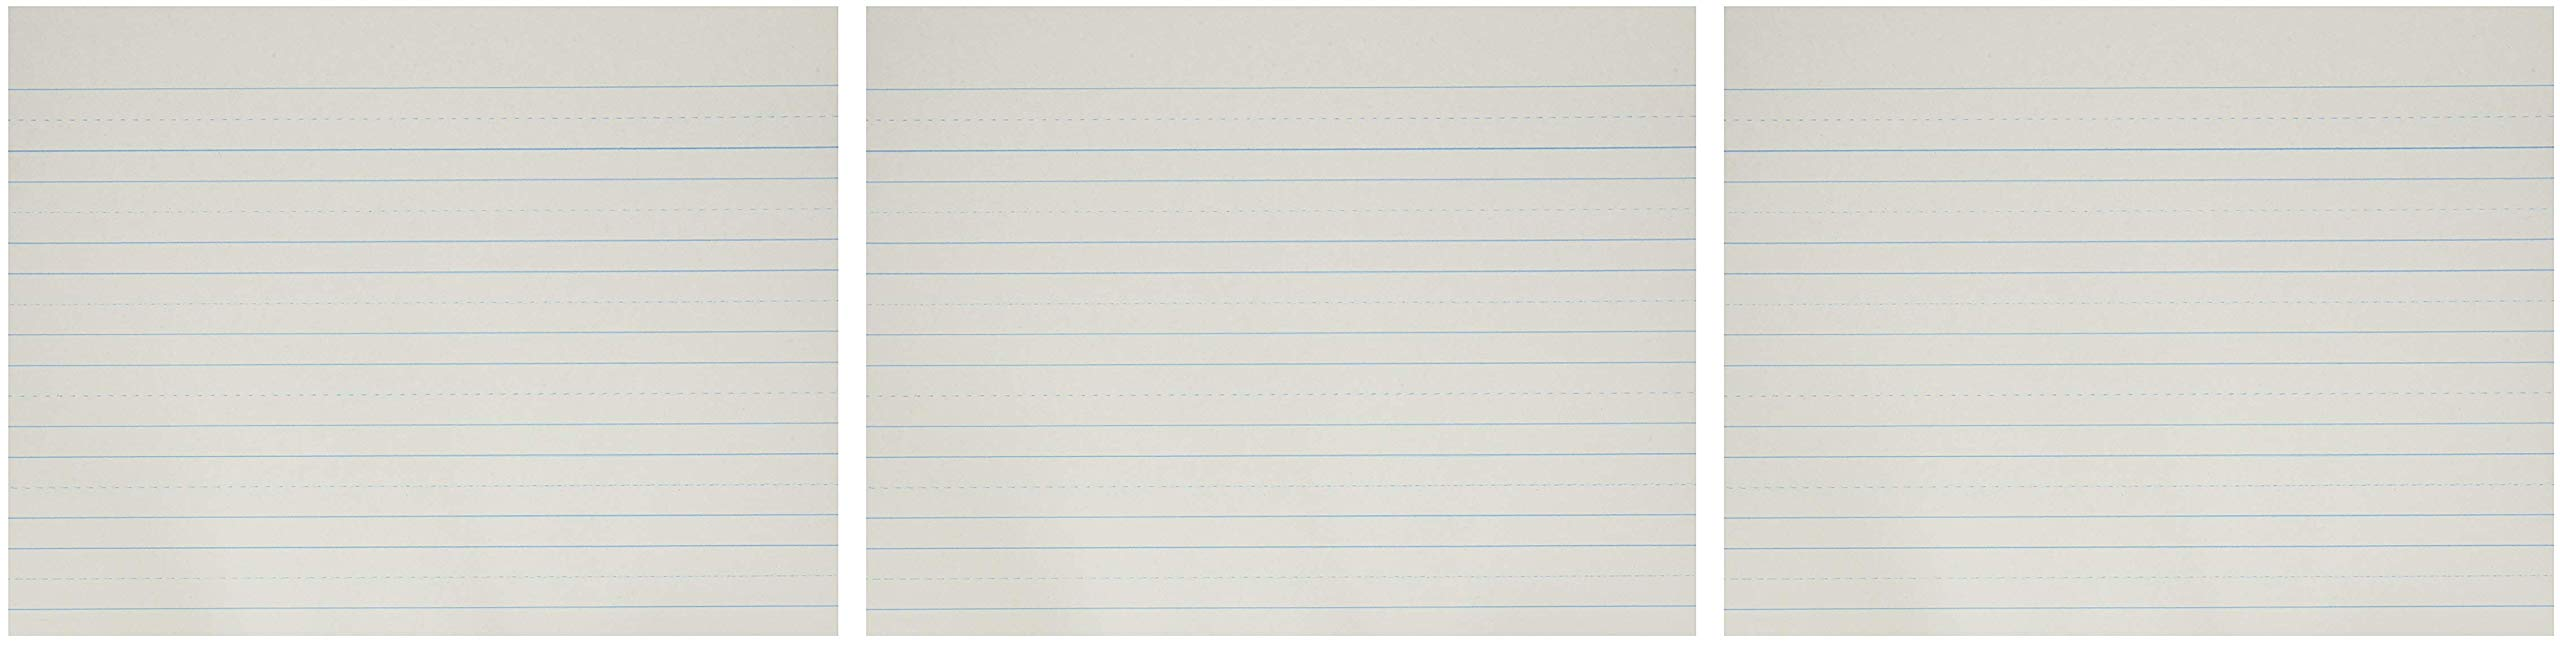 School Smart Skip-A-Line Ruled Paper, 10-1/2 x 8 Inches, 500 Sheets (Thrее Рack) by School Smart (Image #1)